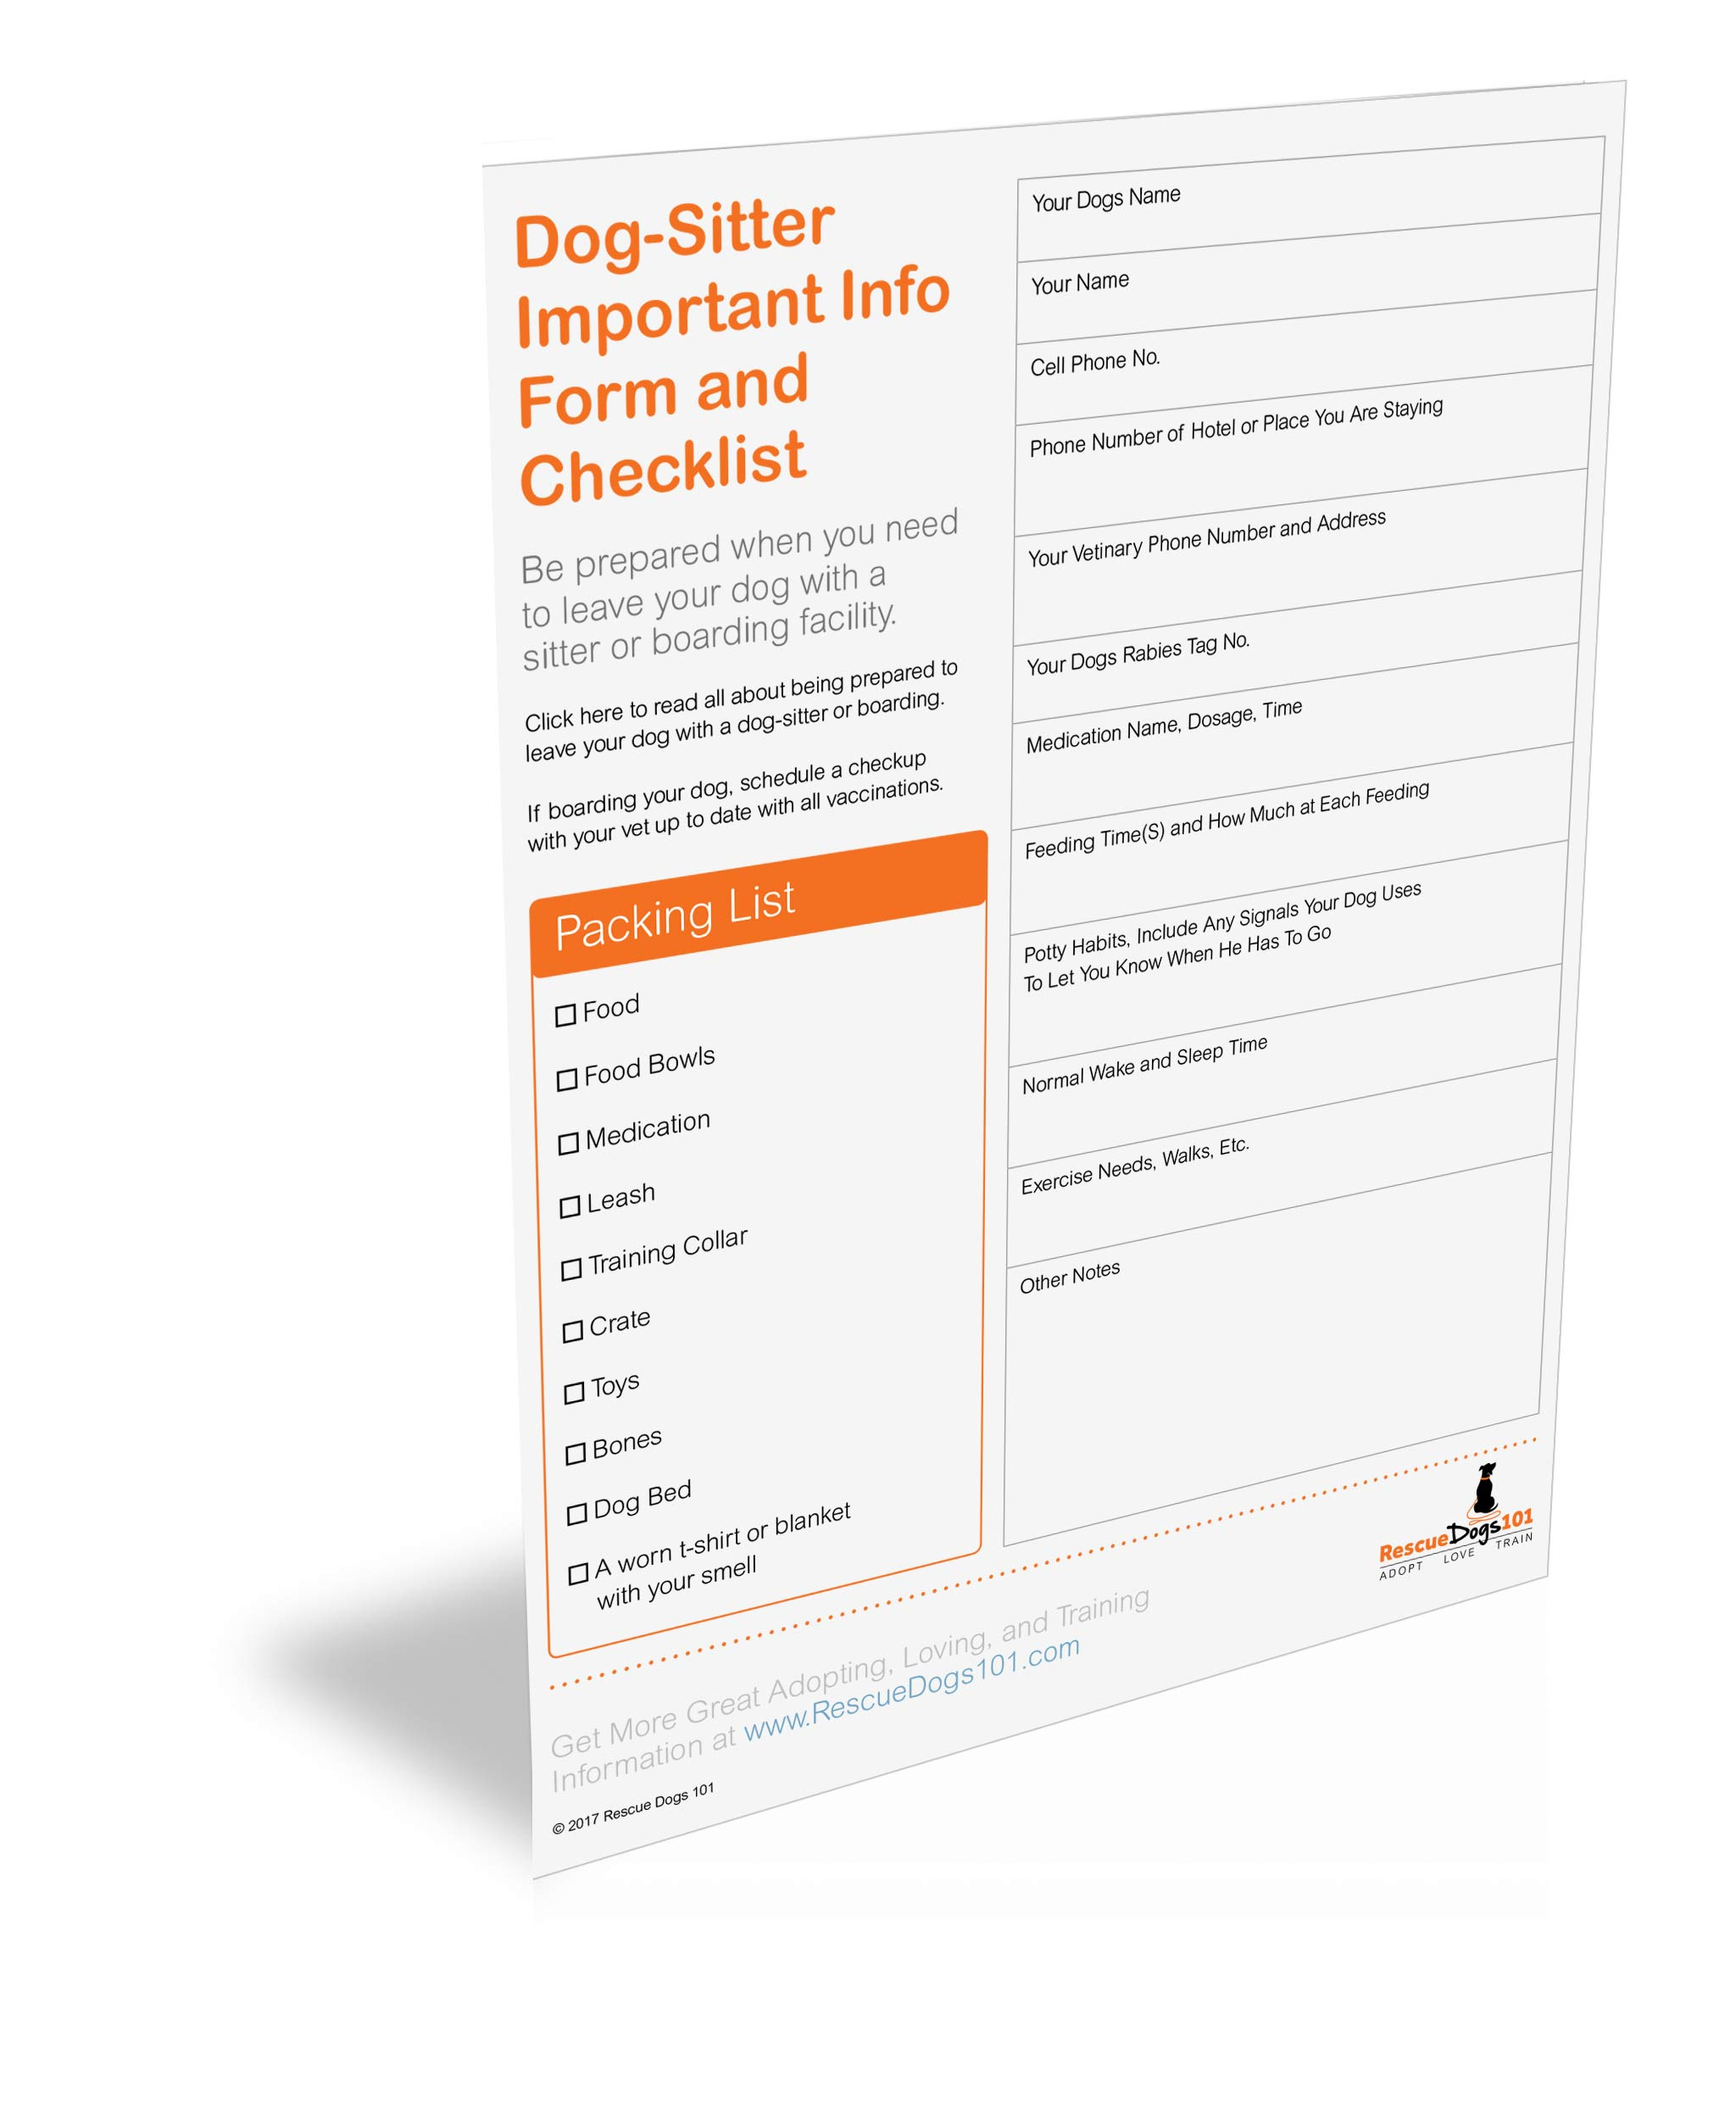 checklist for leaving your dog while on vacation rescue dogs 101